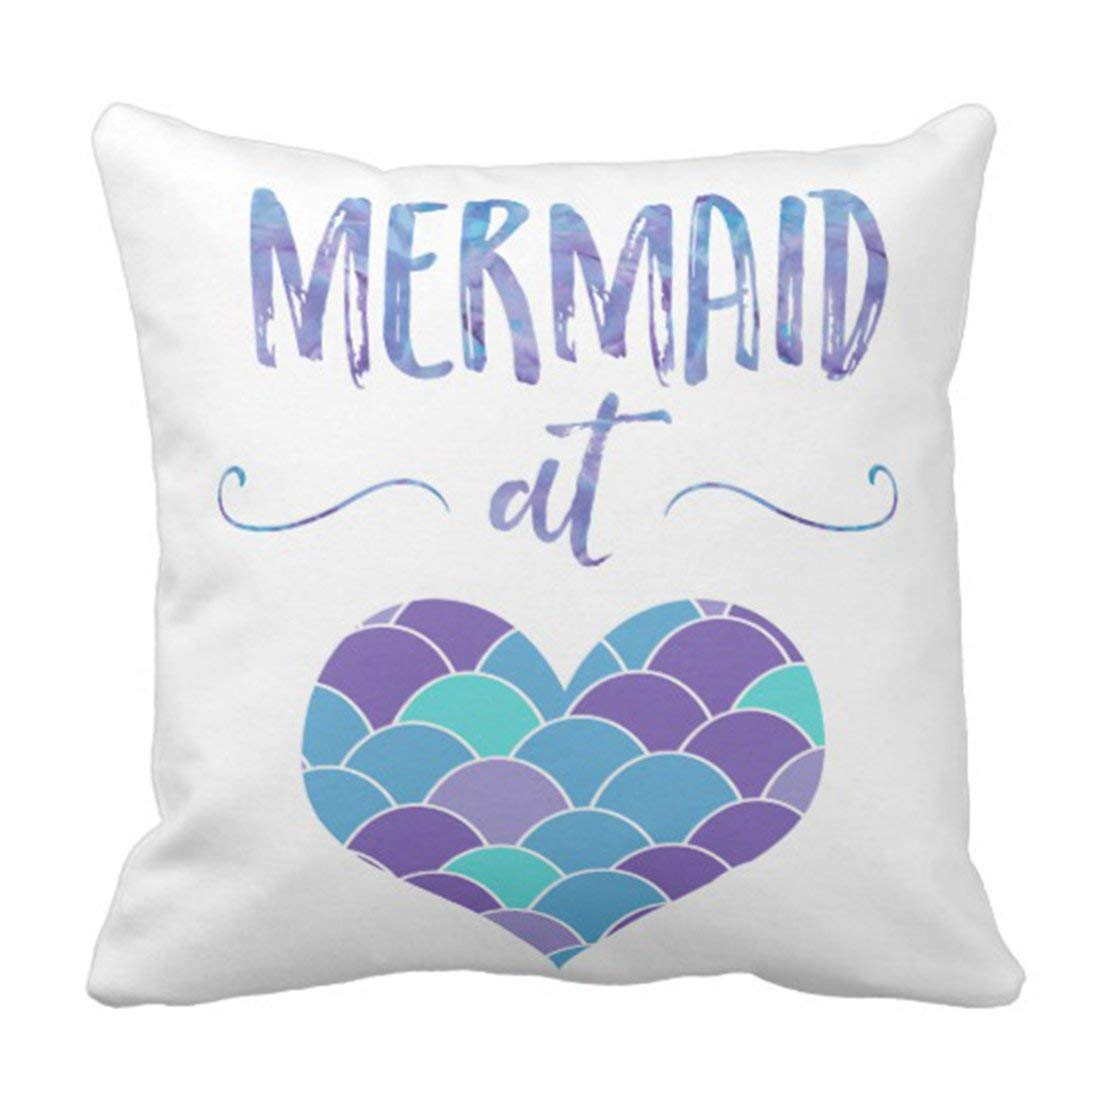 WOPOP Blue Saying Cute Purple and Teal Mermaid at Green Scales Pillowcase Cushion Cover 18x18 inches